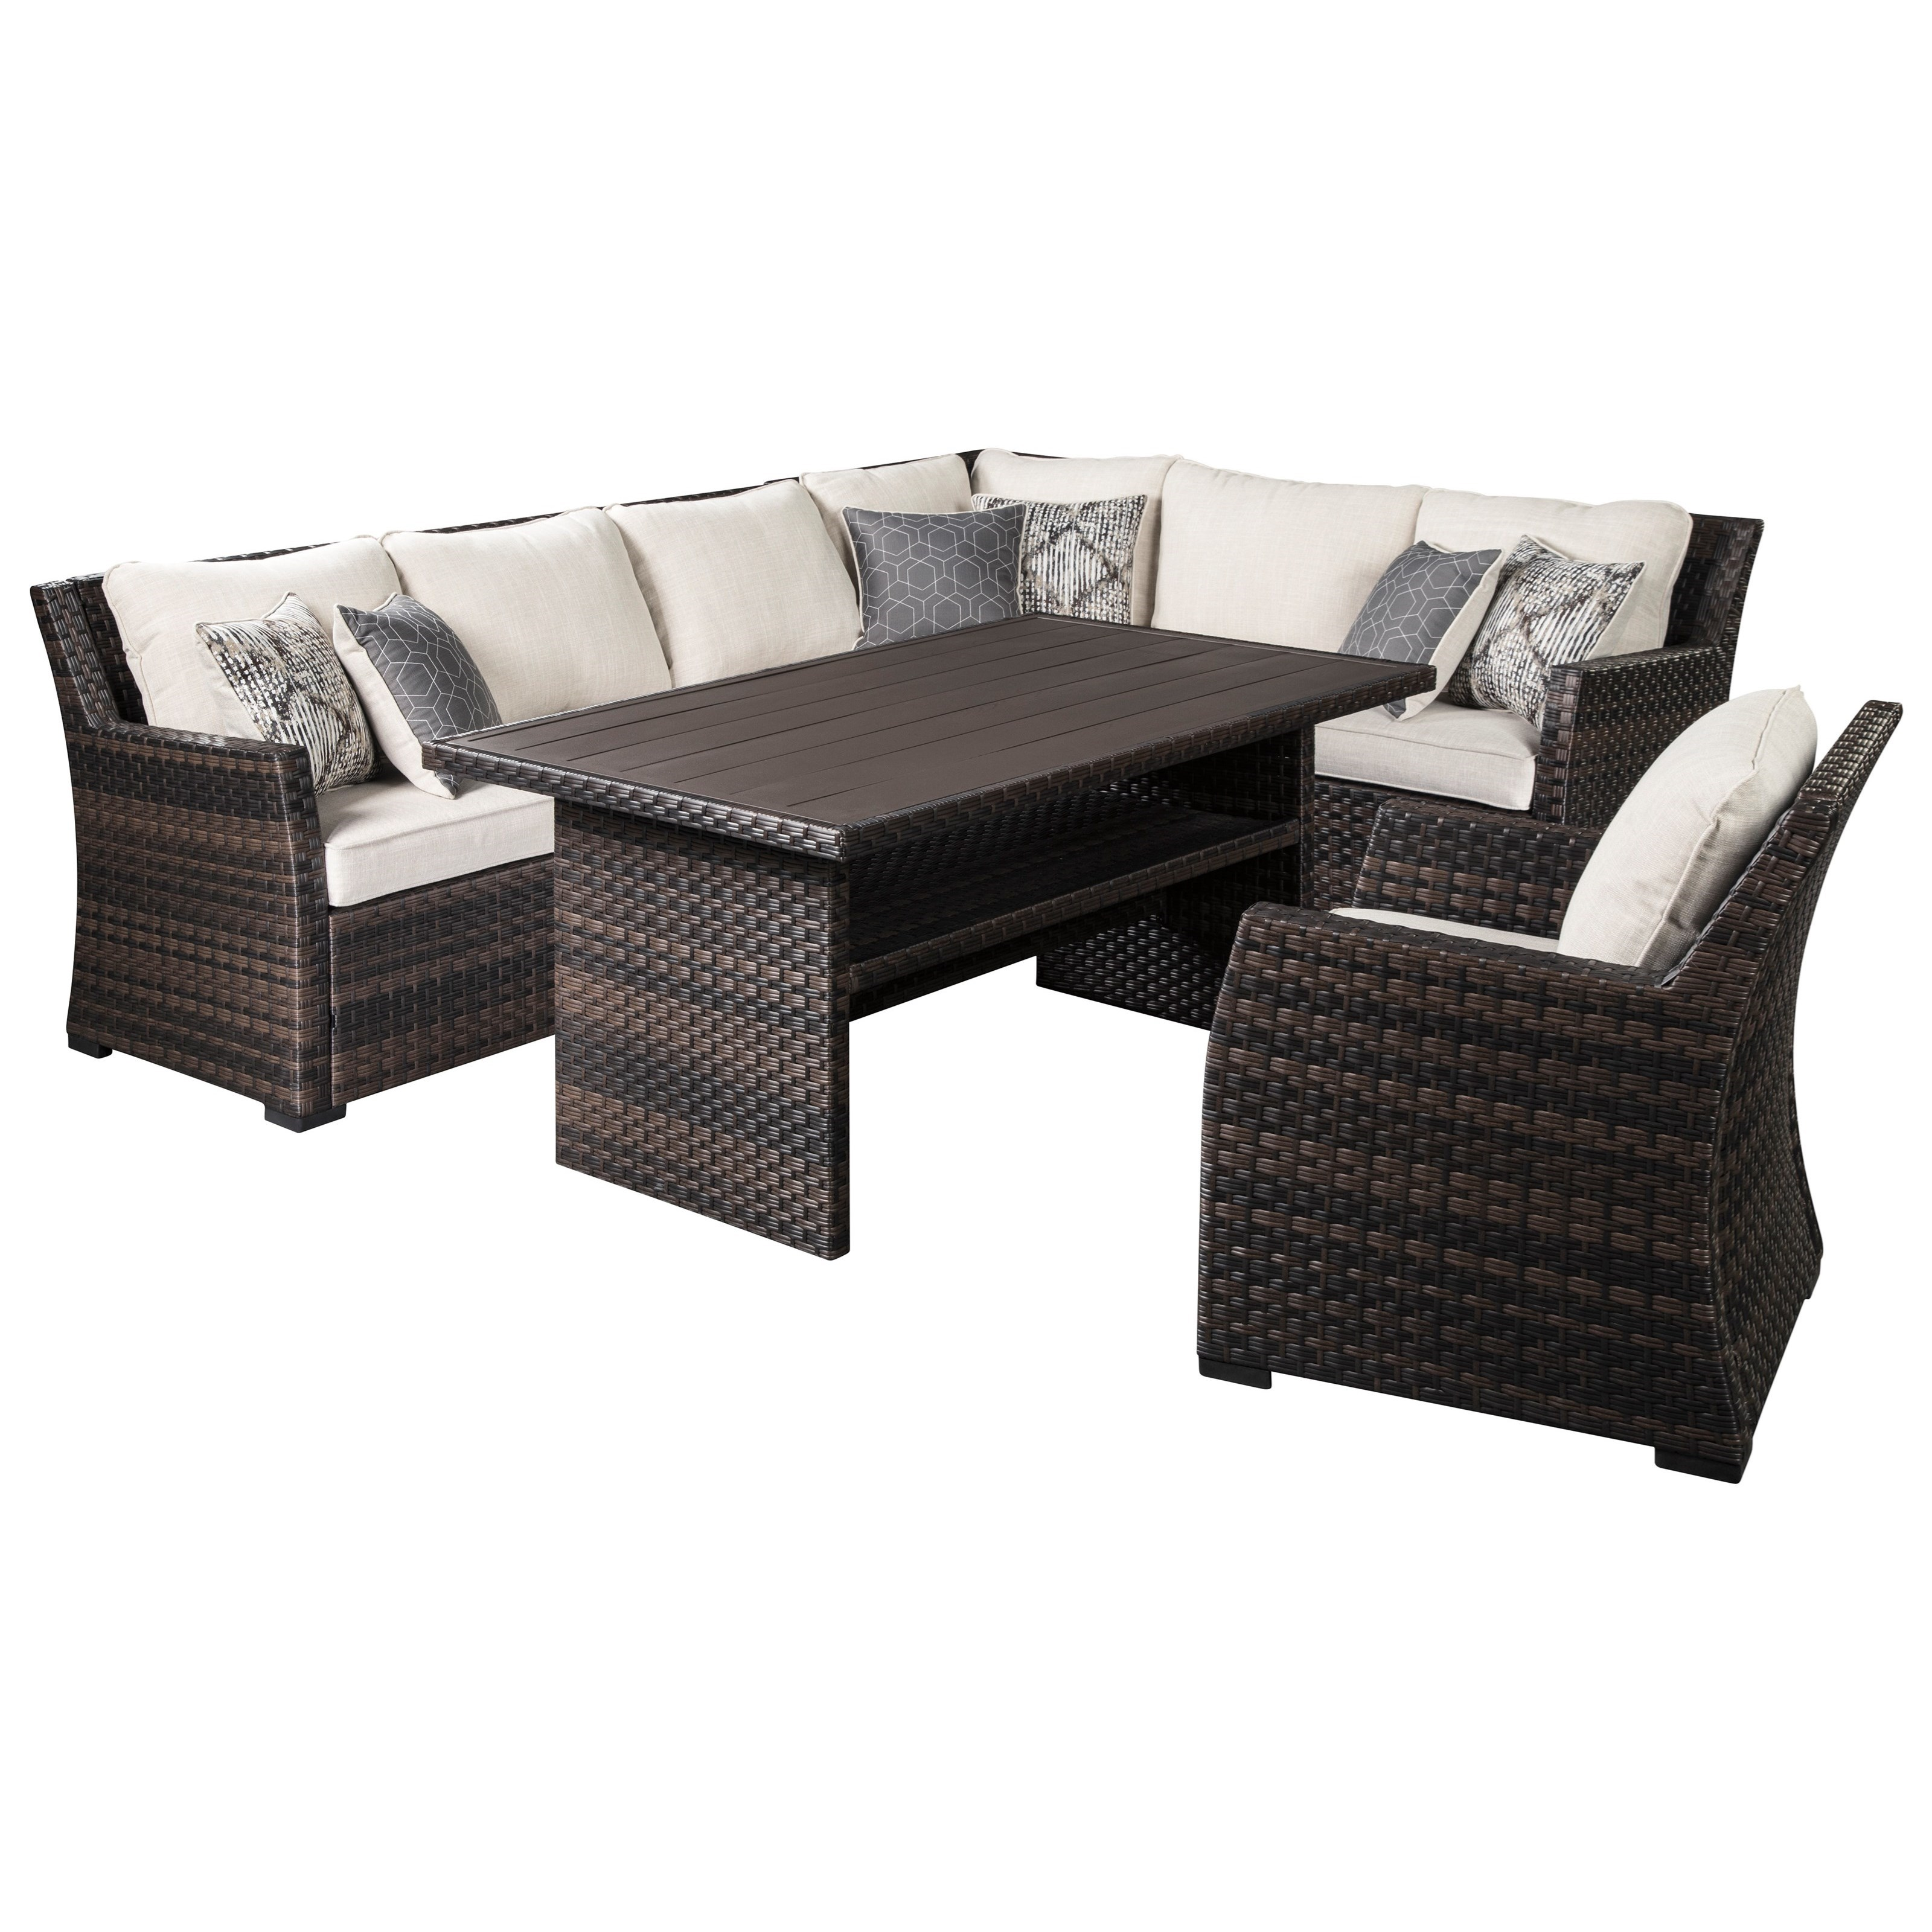 Sandpiper Outdoor Sectional with Table & Lounge Chair at Belfort Furniture